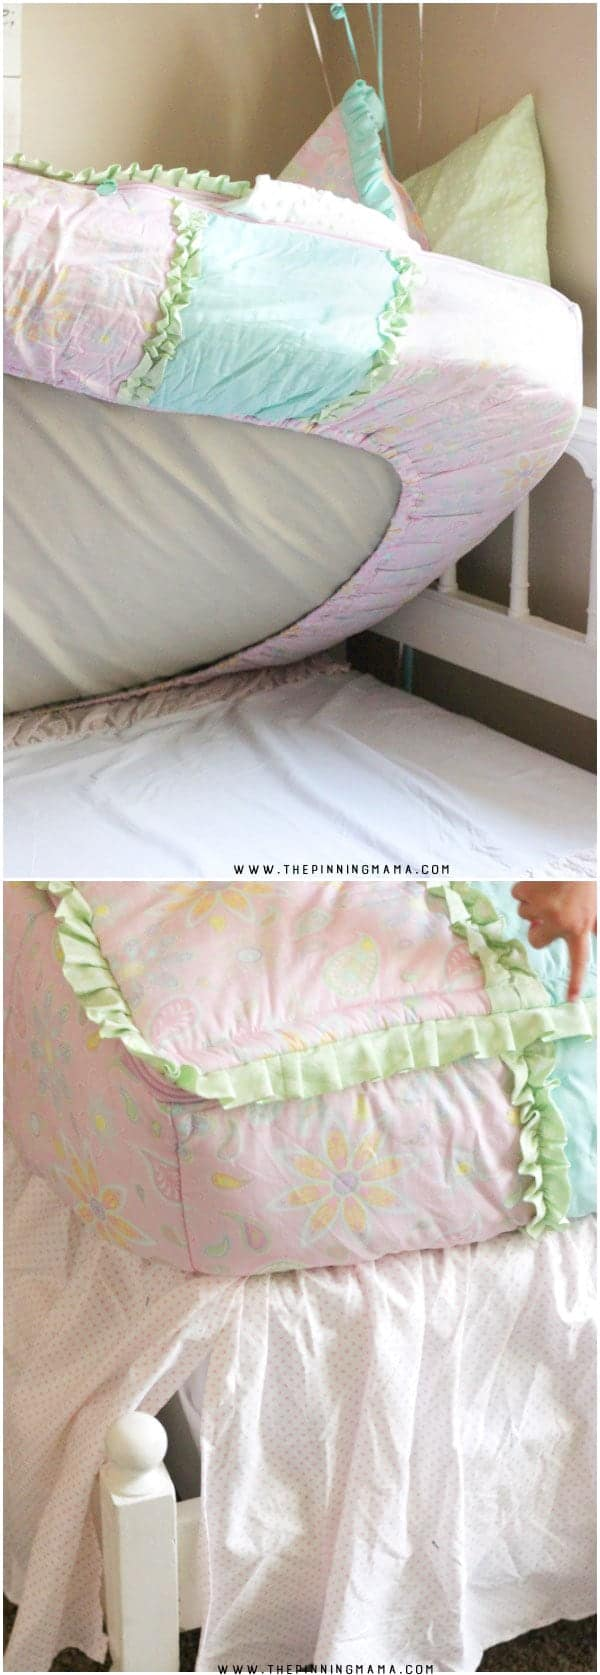 This kids bedding is one piece expertly made to replace the comforter, flat sheet, fitted sheet, and cuddle blanket. I love it because the bedding never shifts around no matter how crazy your kids sleep!